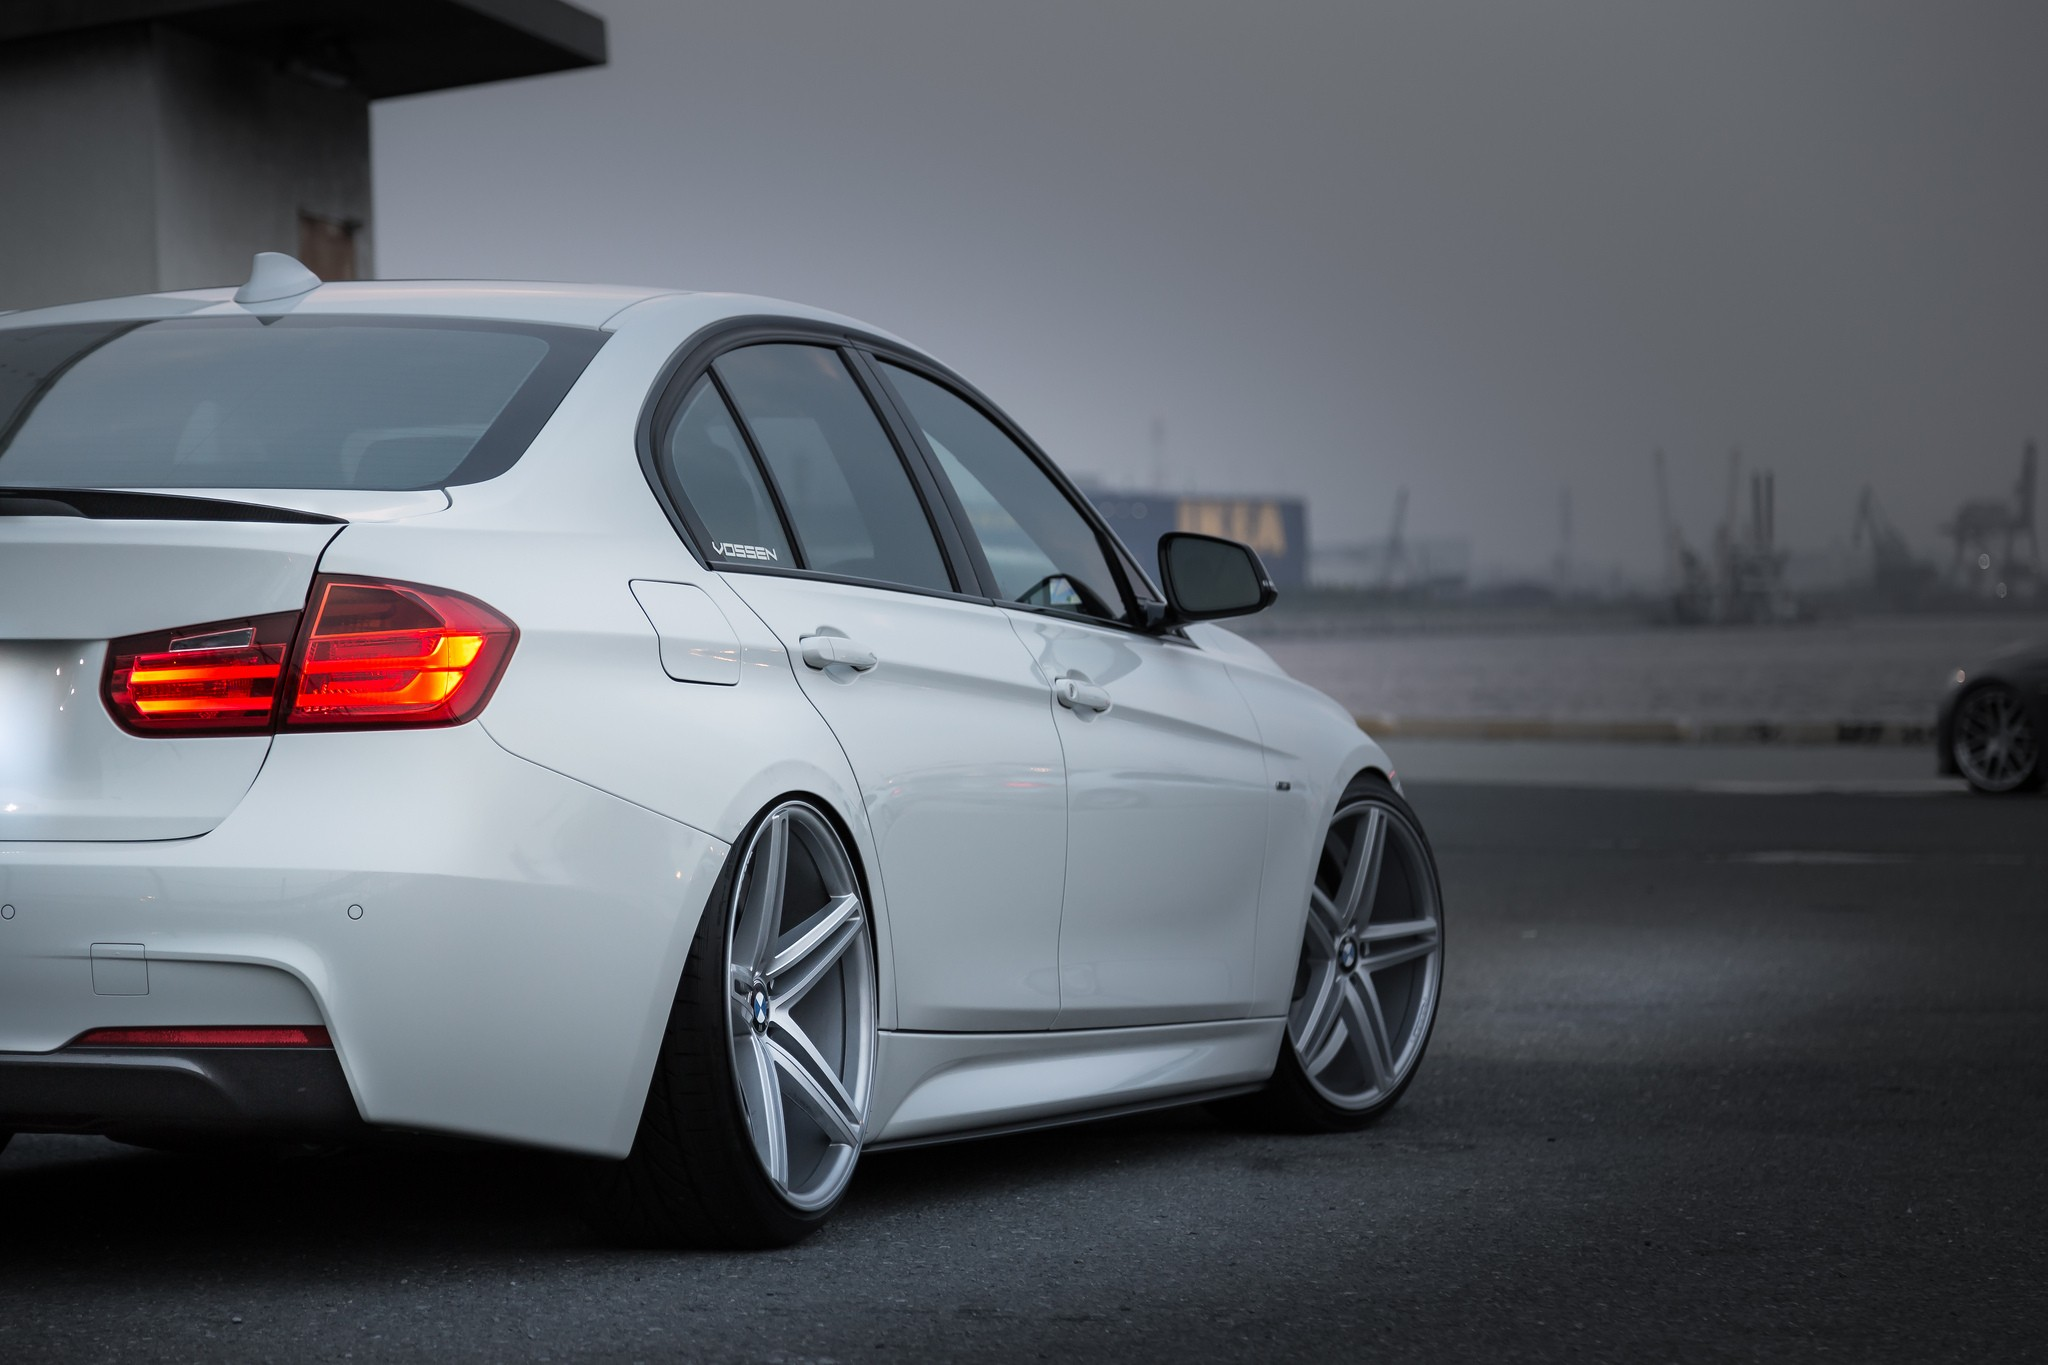 Bmw Car Stance Simple Wheels Camber Vehicle White Cars Bmw